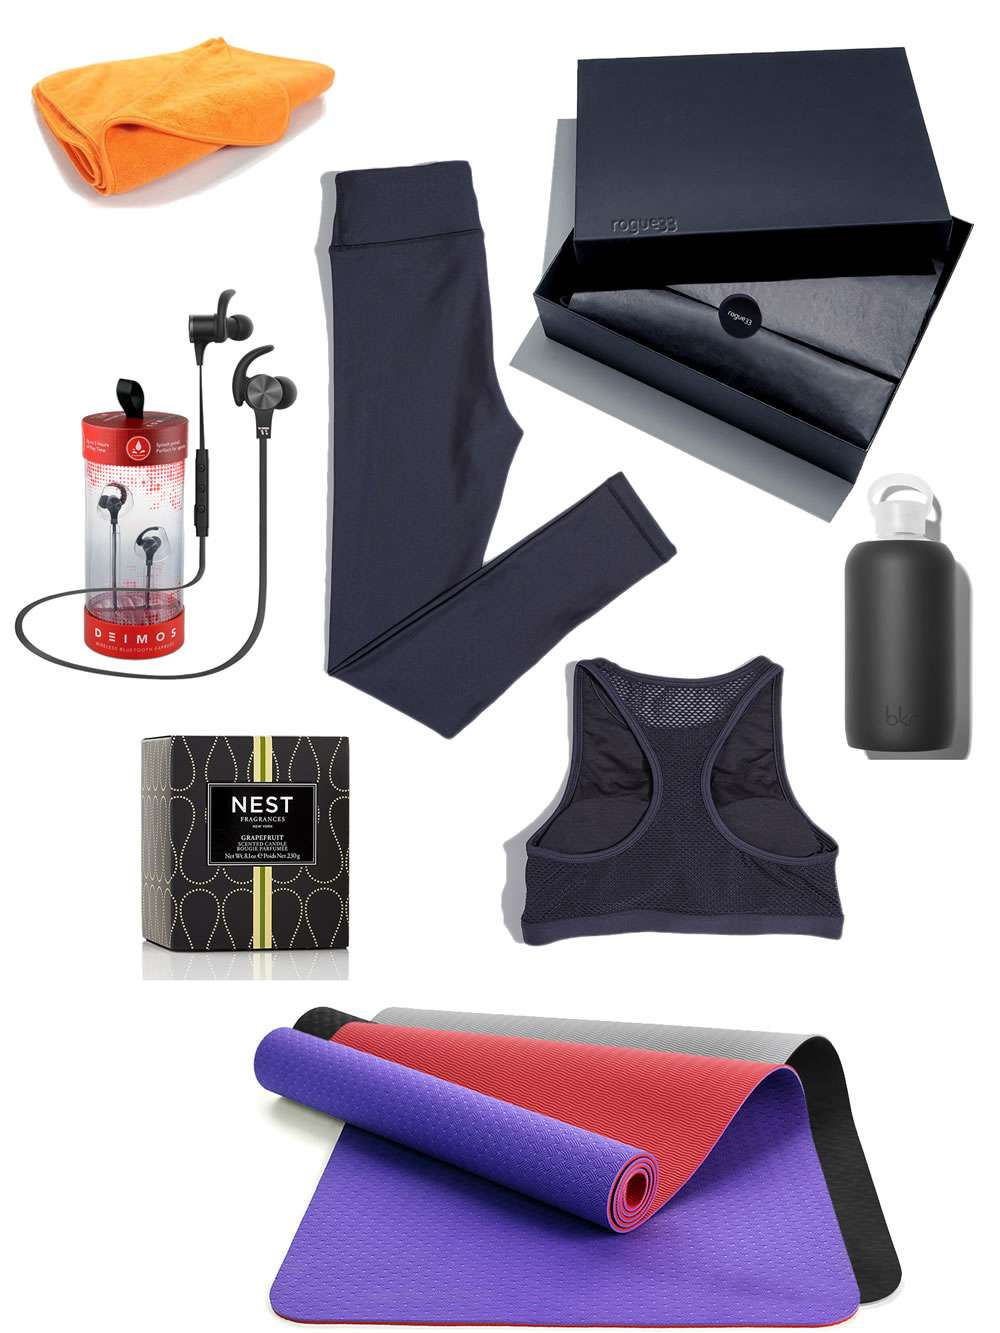 Redeem Your Core Starter Kit* - *Get Your FREE Core Starter Kit VALUED AT $250 when you purchase at nordictrack.com. You must click through one of our review or site links before ordering at Nordictrack. Men's options available.WELCOME RUELALA MEMBERS